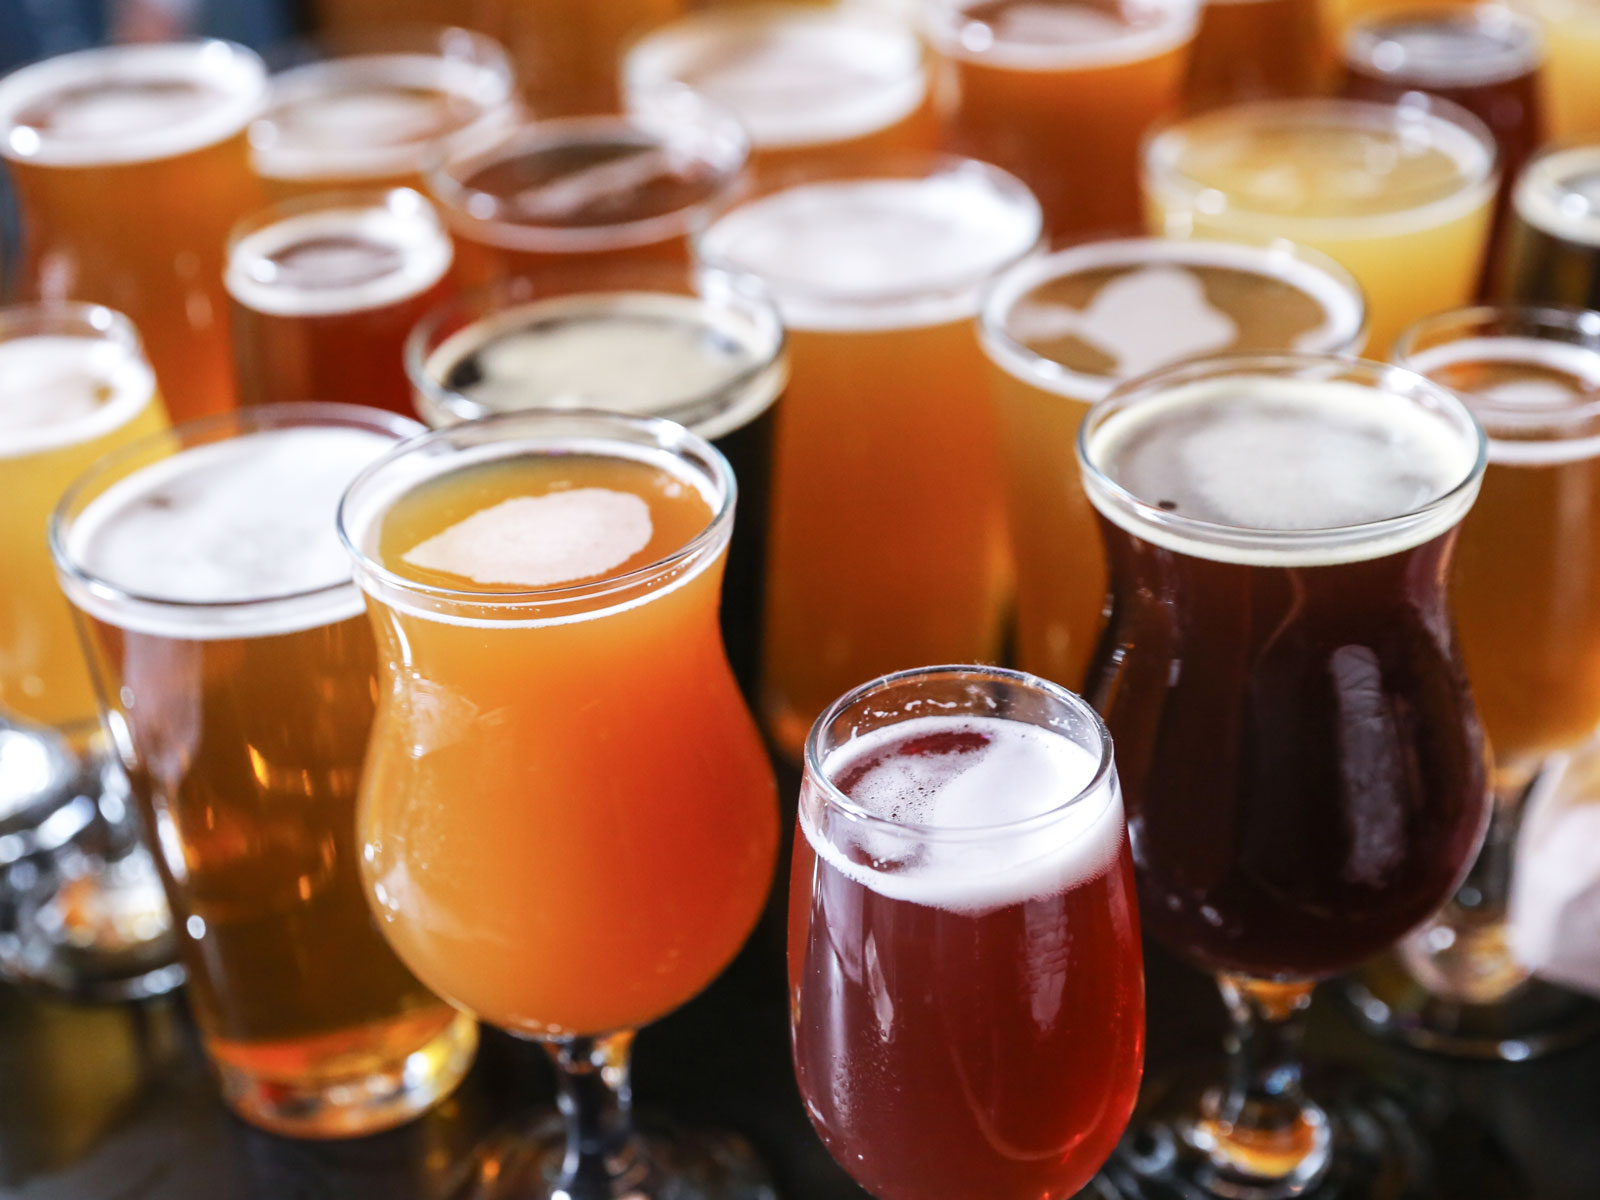 brewers-association-diversity-FT-BLOG0418.jpg